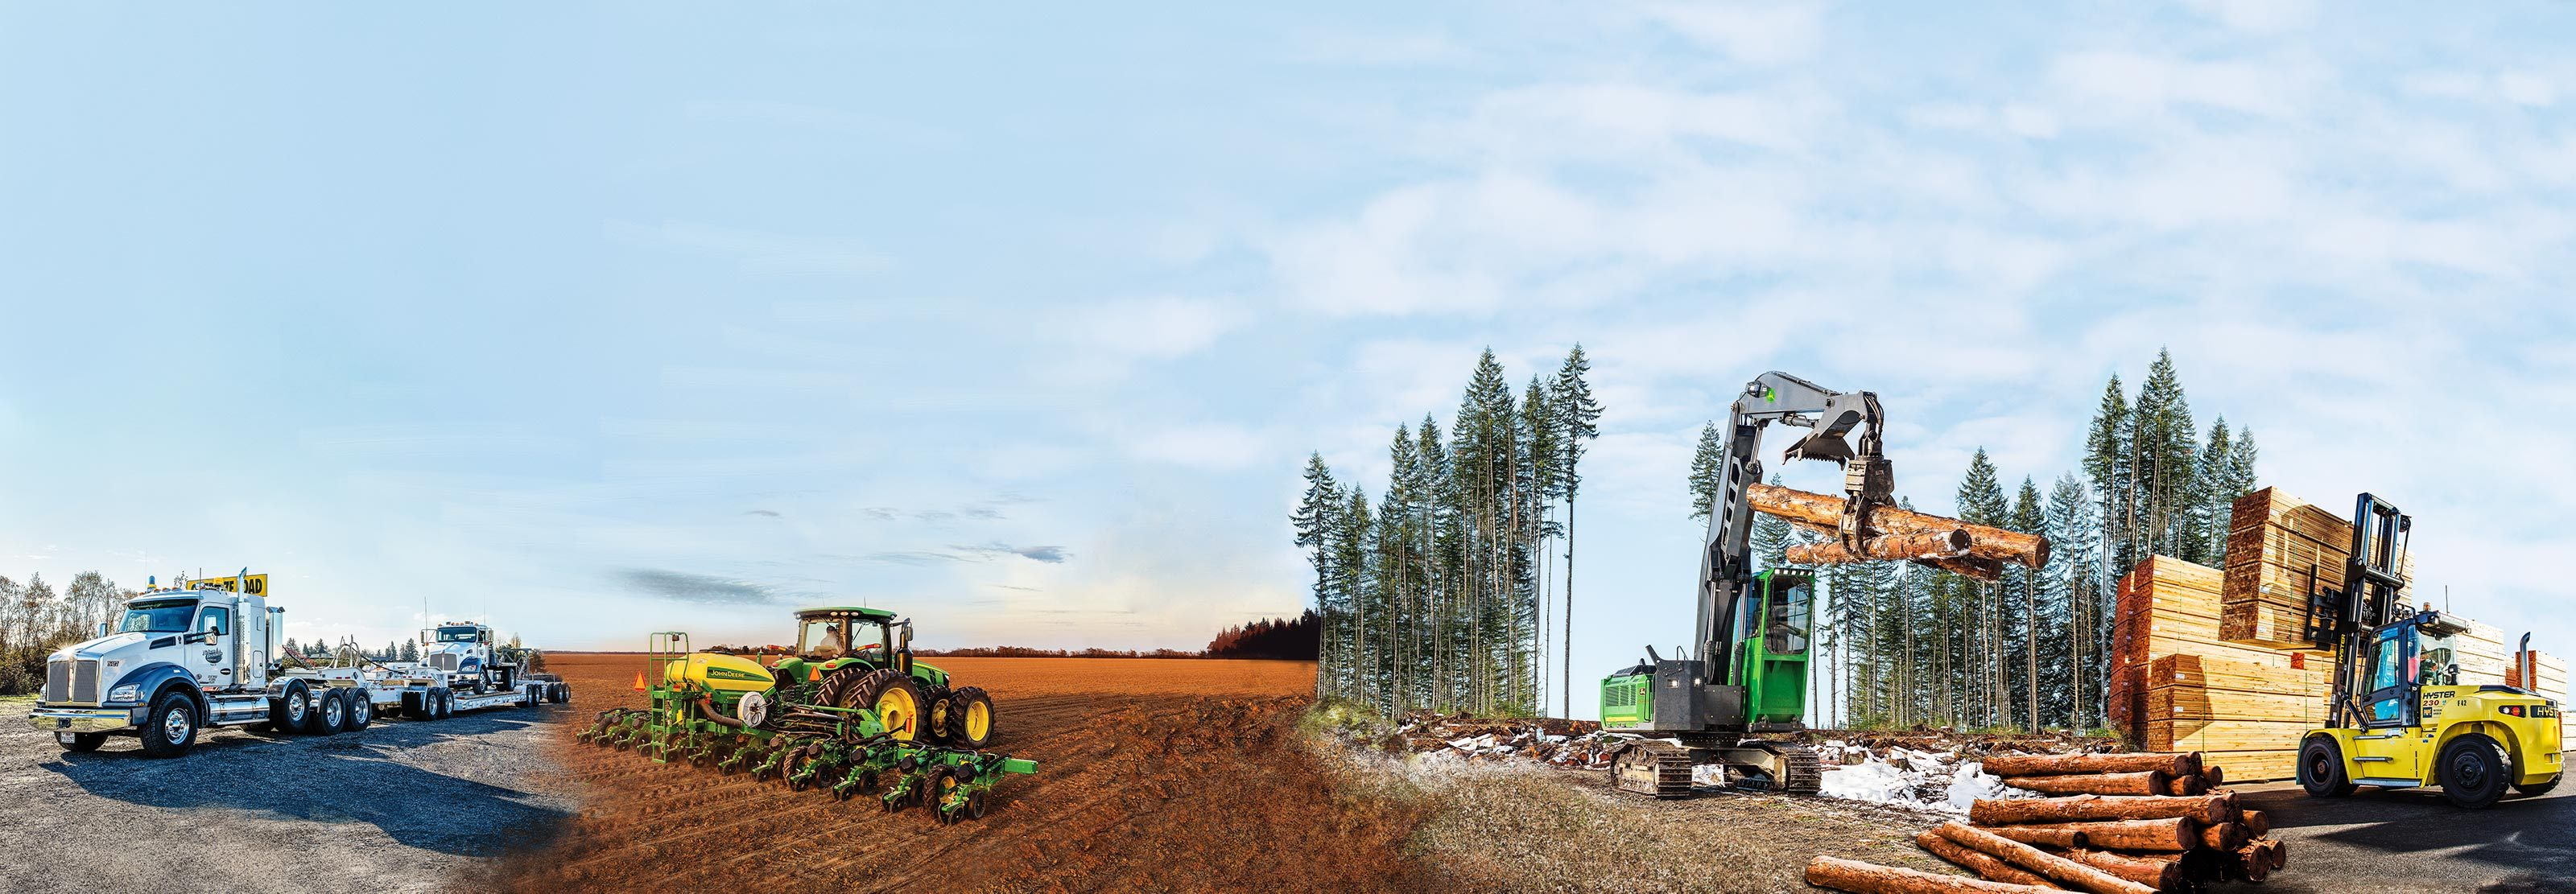 composite image of semi truck, combine in field, logging truck in forest, and forklift lifting lumber